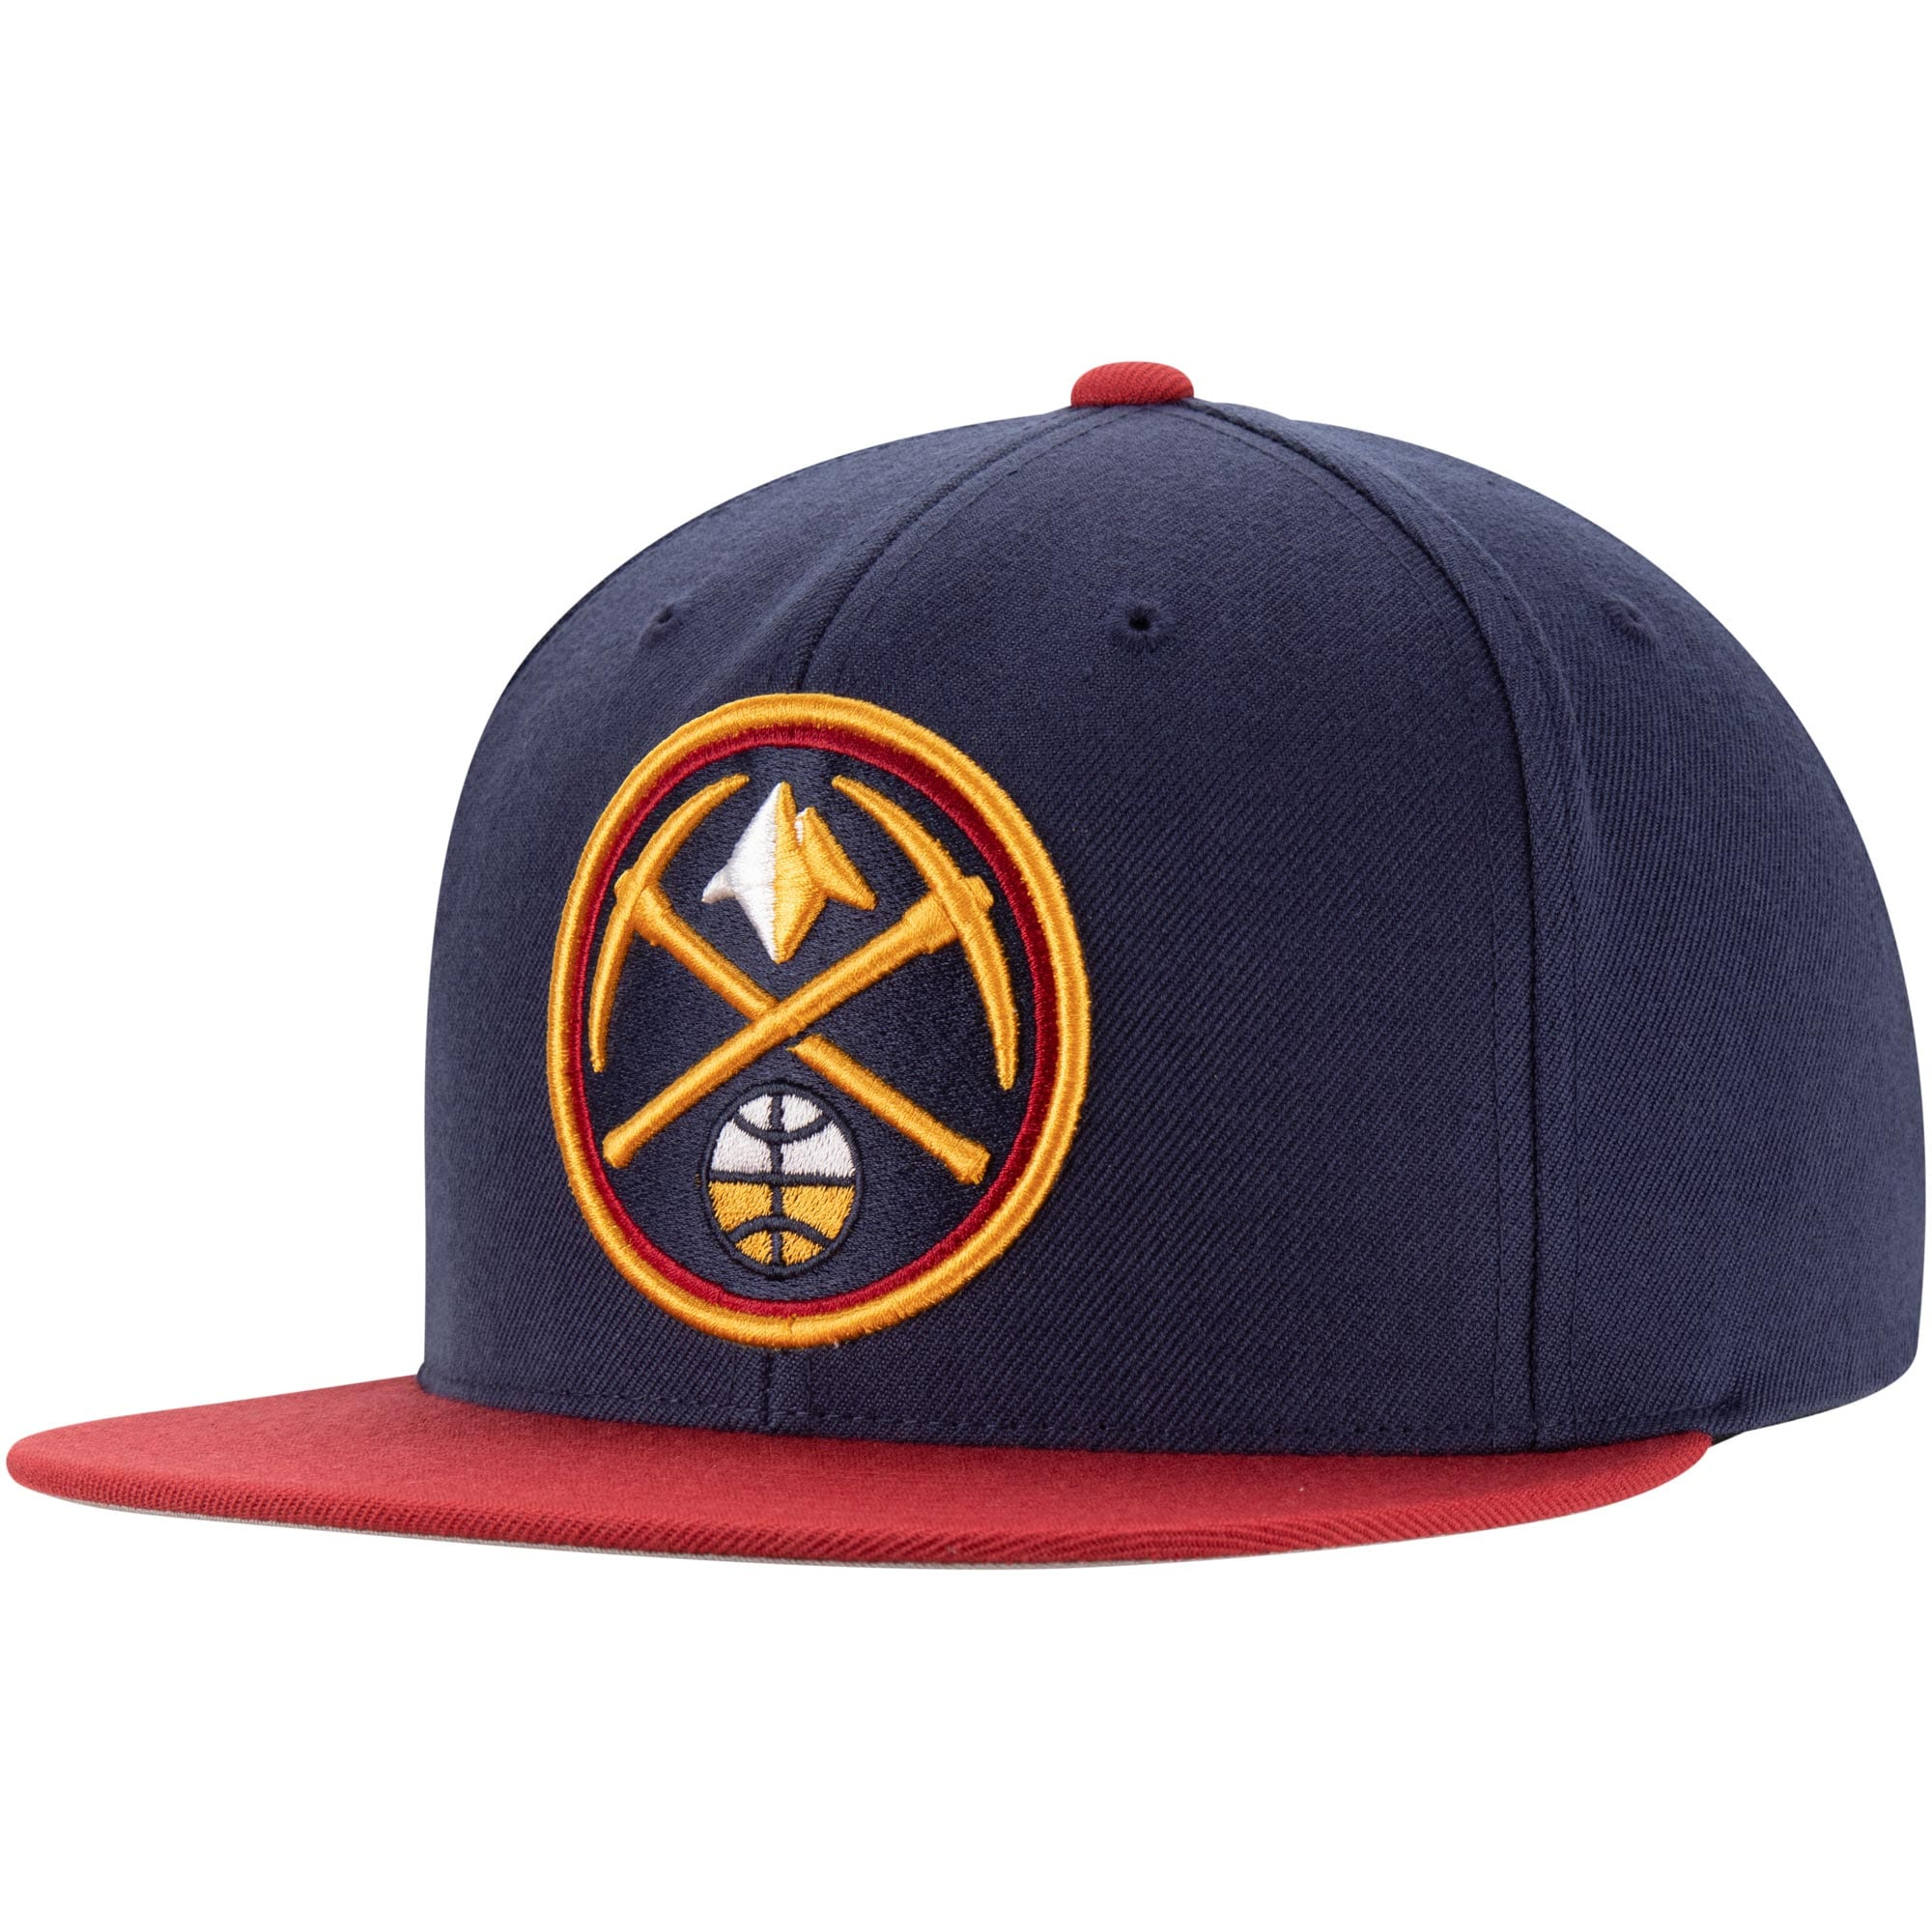 Denver Nuggets Mitchell & Ness Two-Tone Wool Snapback Hat - Navy/Red